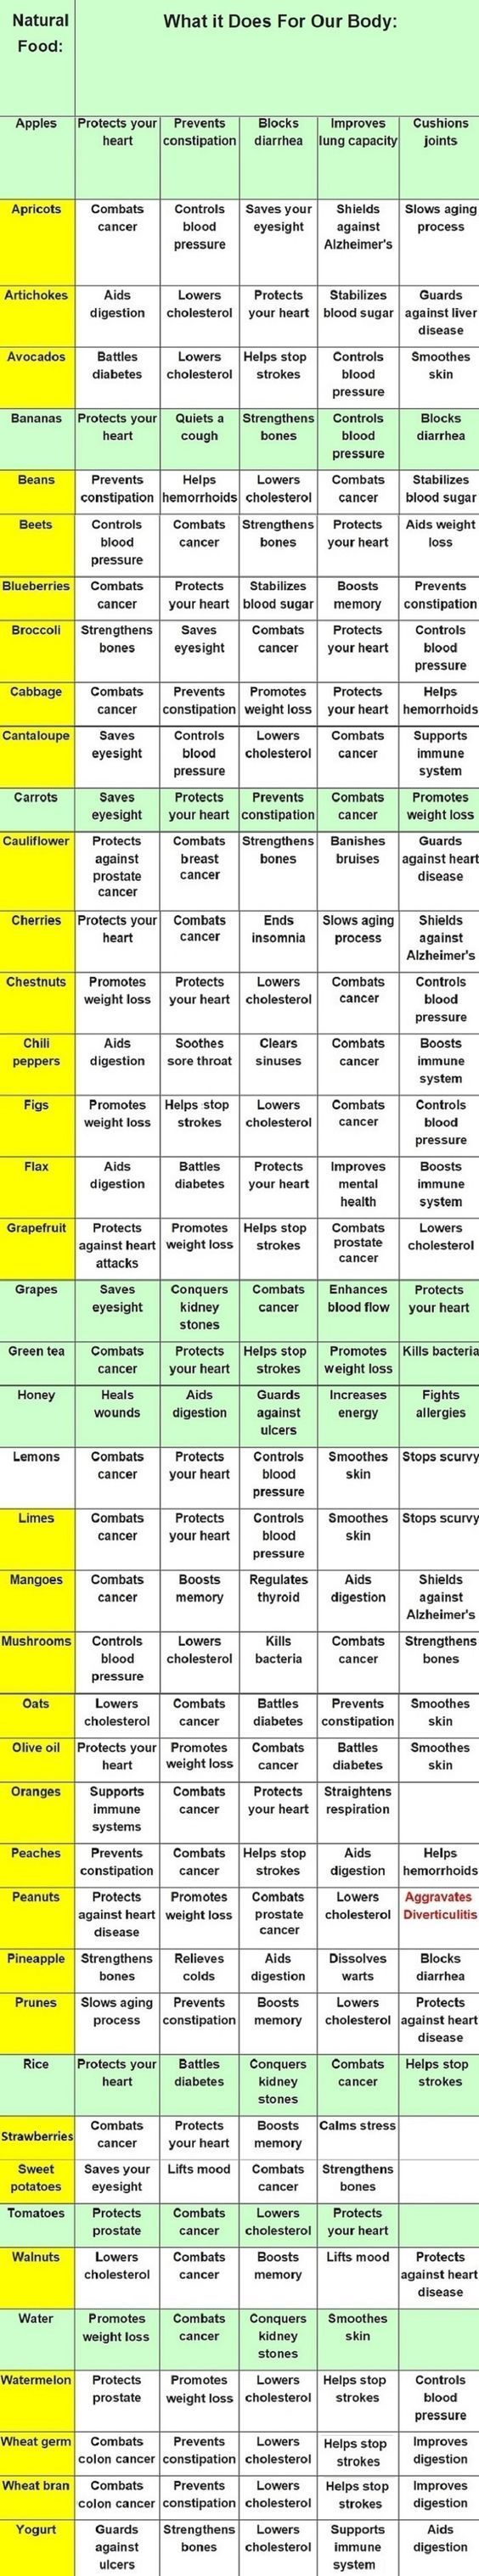 Fruits & Vegetables Health Benefits Chart. Learn the health benefits of Tego Tea; the diabetic miracle that significantly reduces blood sugar levels and symptoms associated with Type 2 Diabetes. Tego Tea may provide alternatives, solutions, and remedies to many of today's health issues and is designed from the extract of potent world superfoods; Chamomile, Arabica, Chiccory Root, Crab Apple, Running Spruce, Blueberry, and Fenugreek.